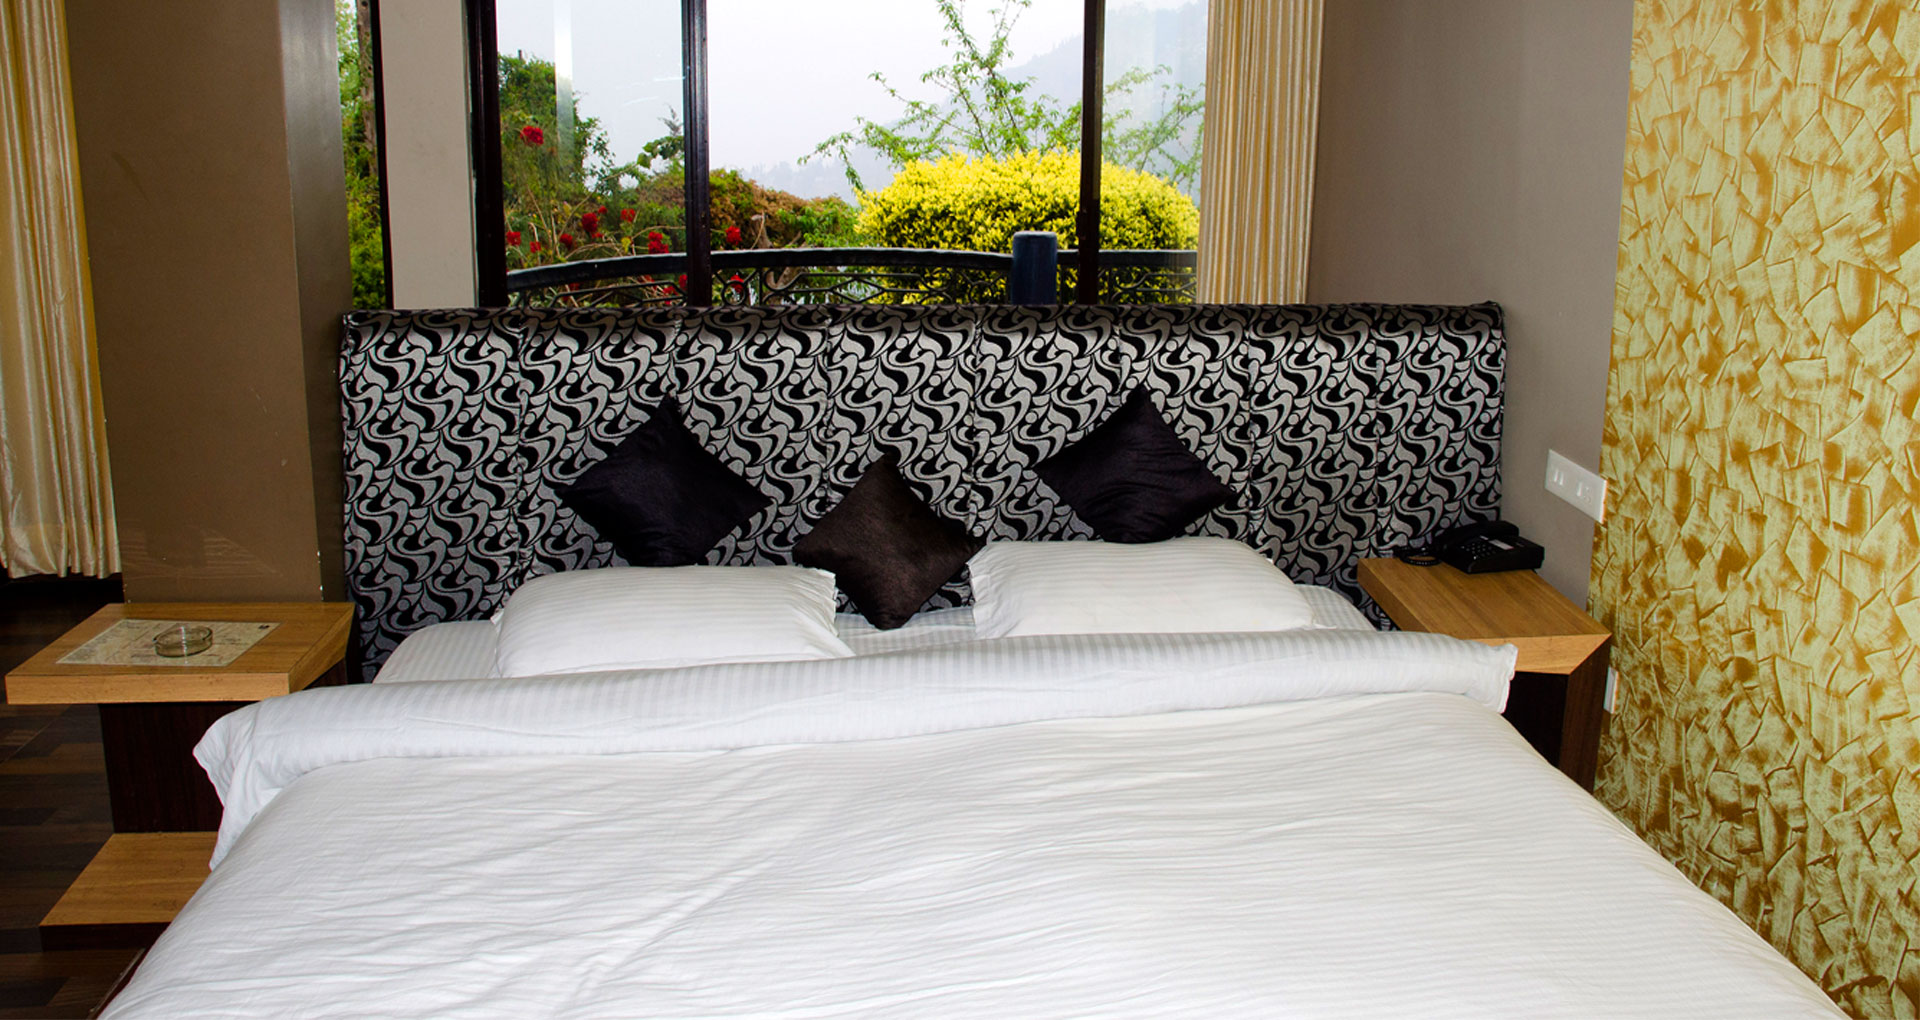 Deluxe Room on MAP,                                     THE SOODS GARDEN RETREAT - Budget Hotels in Kalimpong